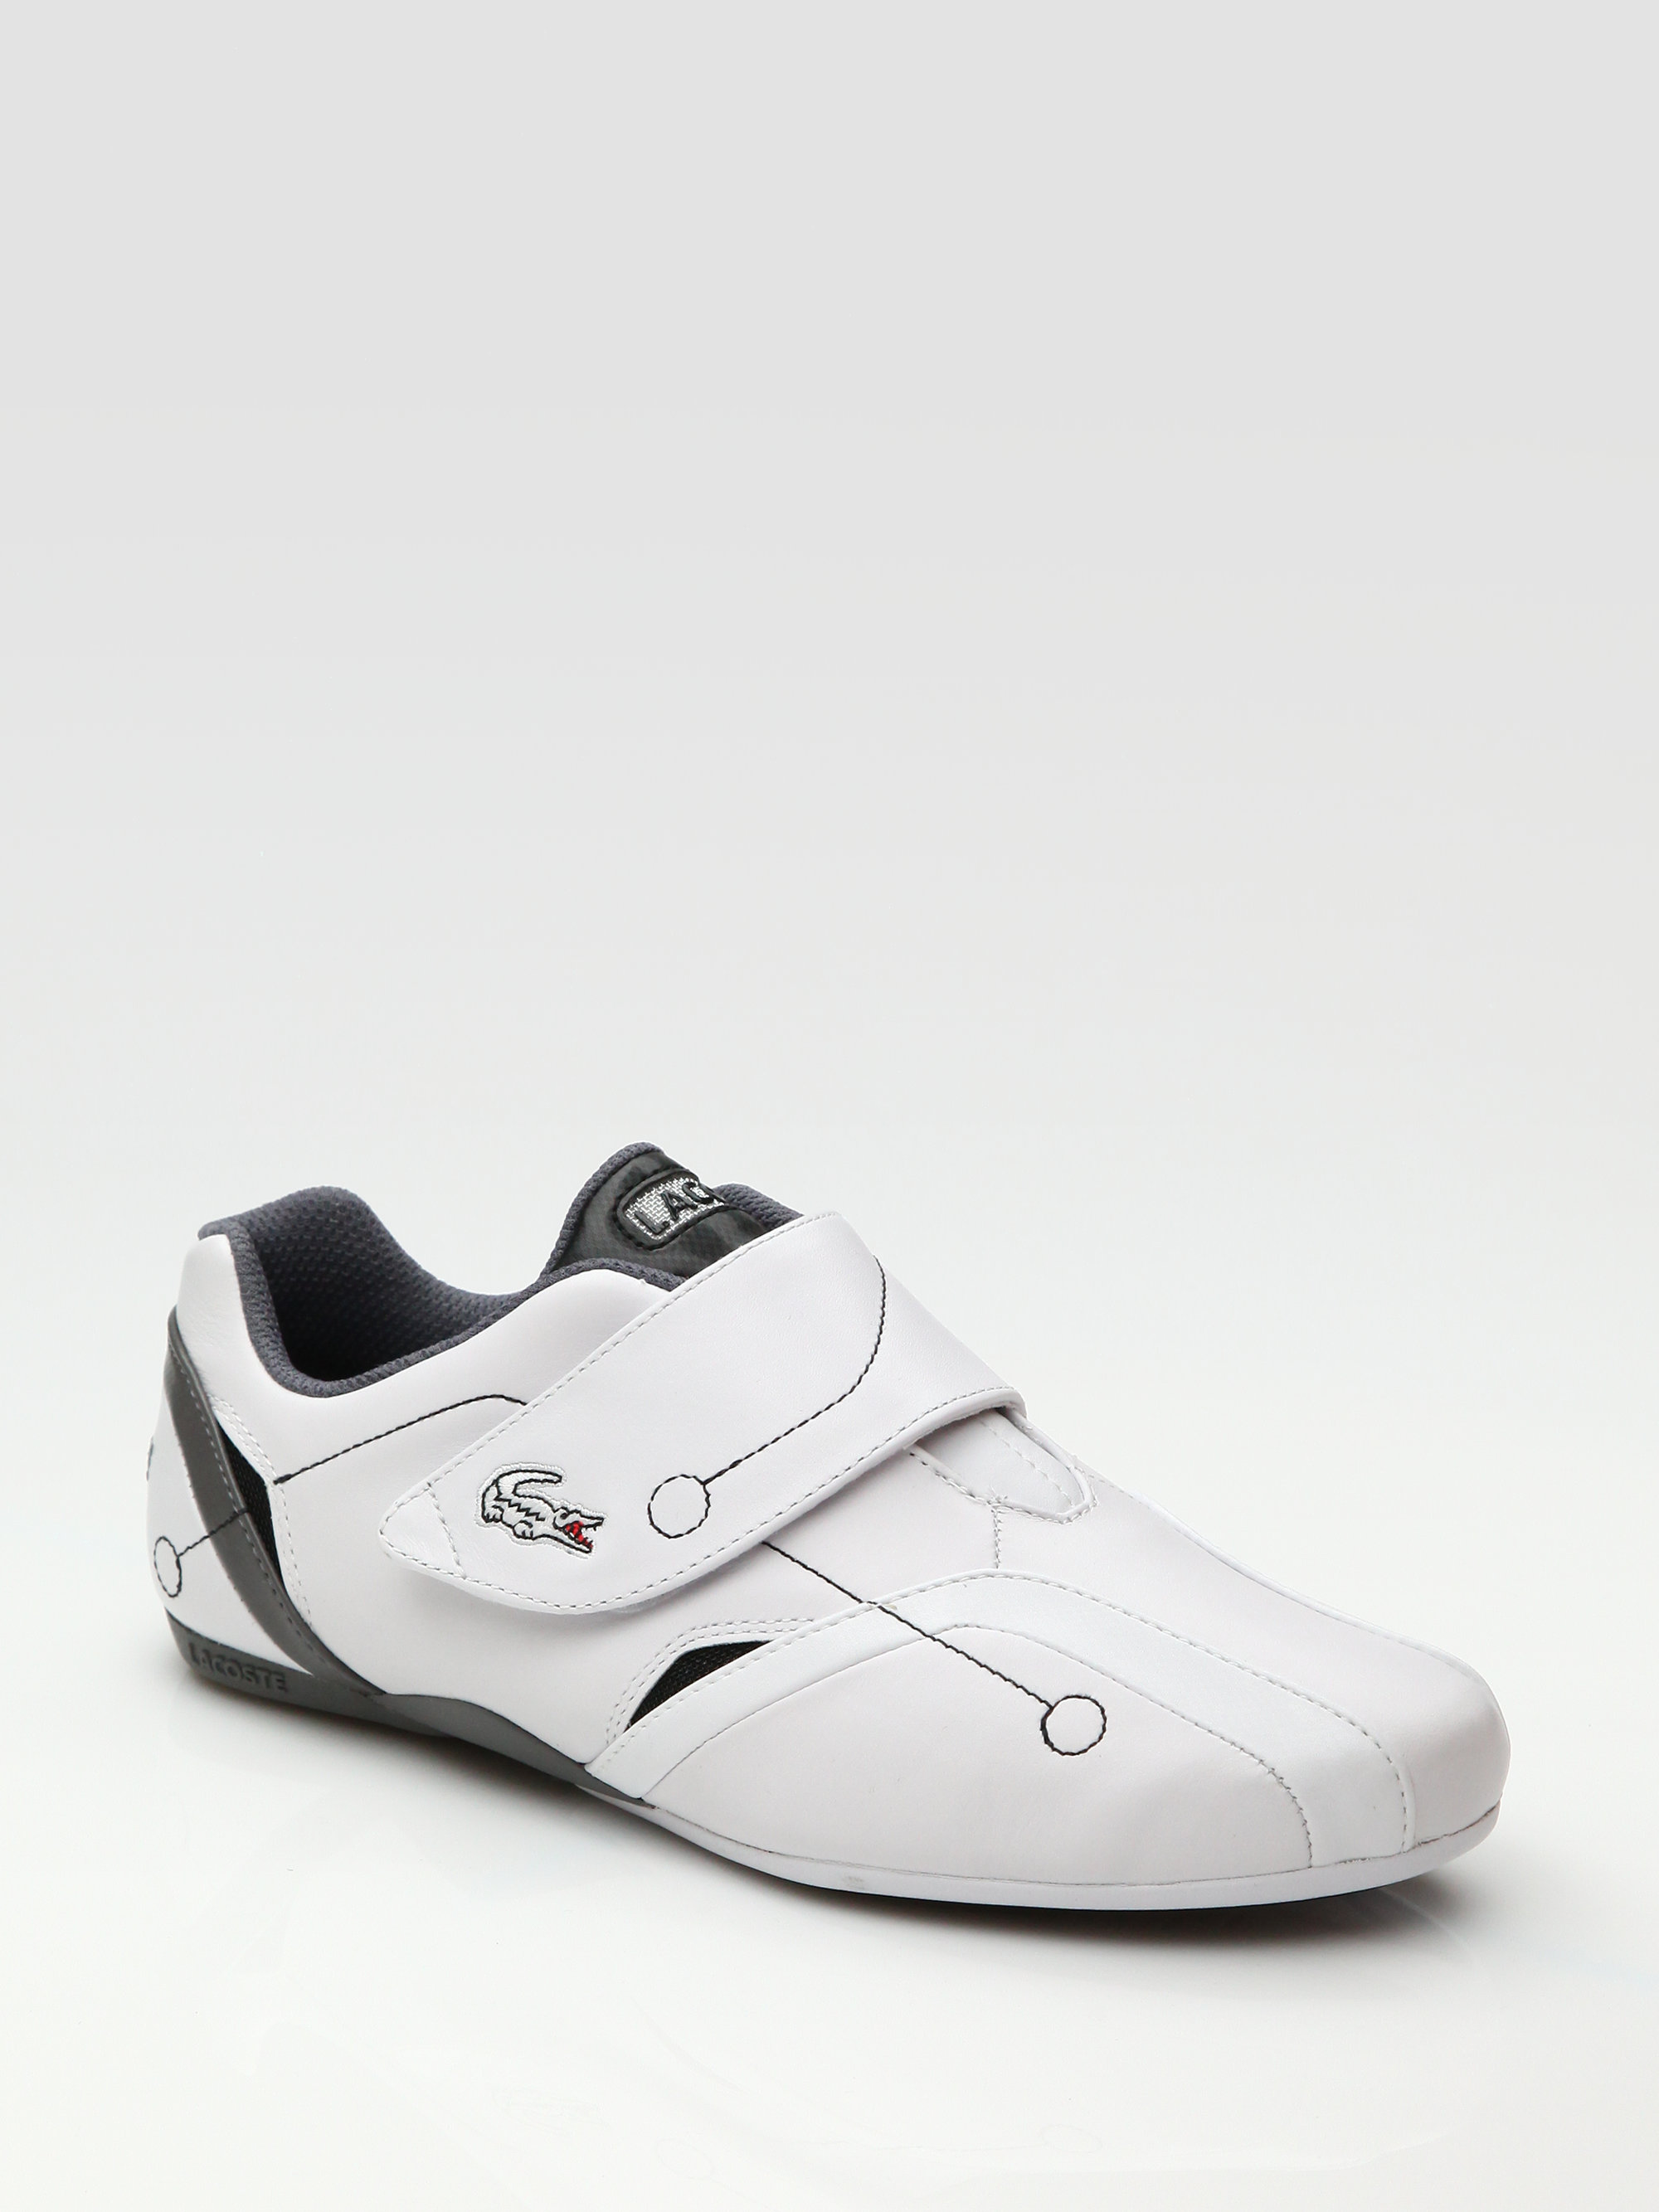 10f20fa1e Lyst - Lacoste Protect M Leather Sneakers in White for Men